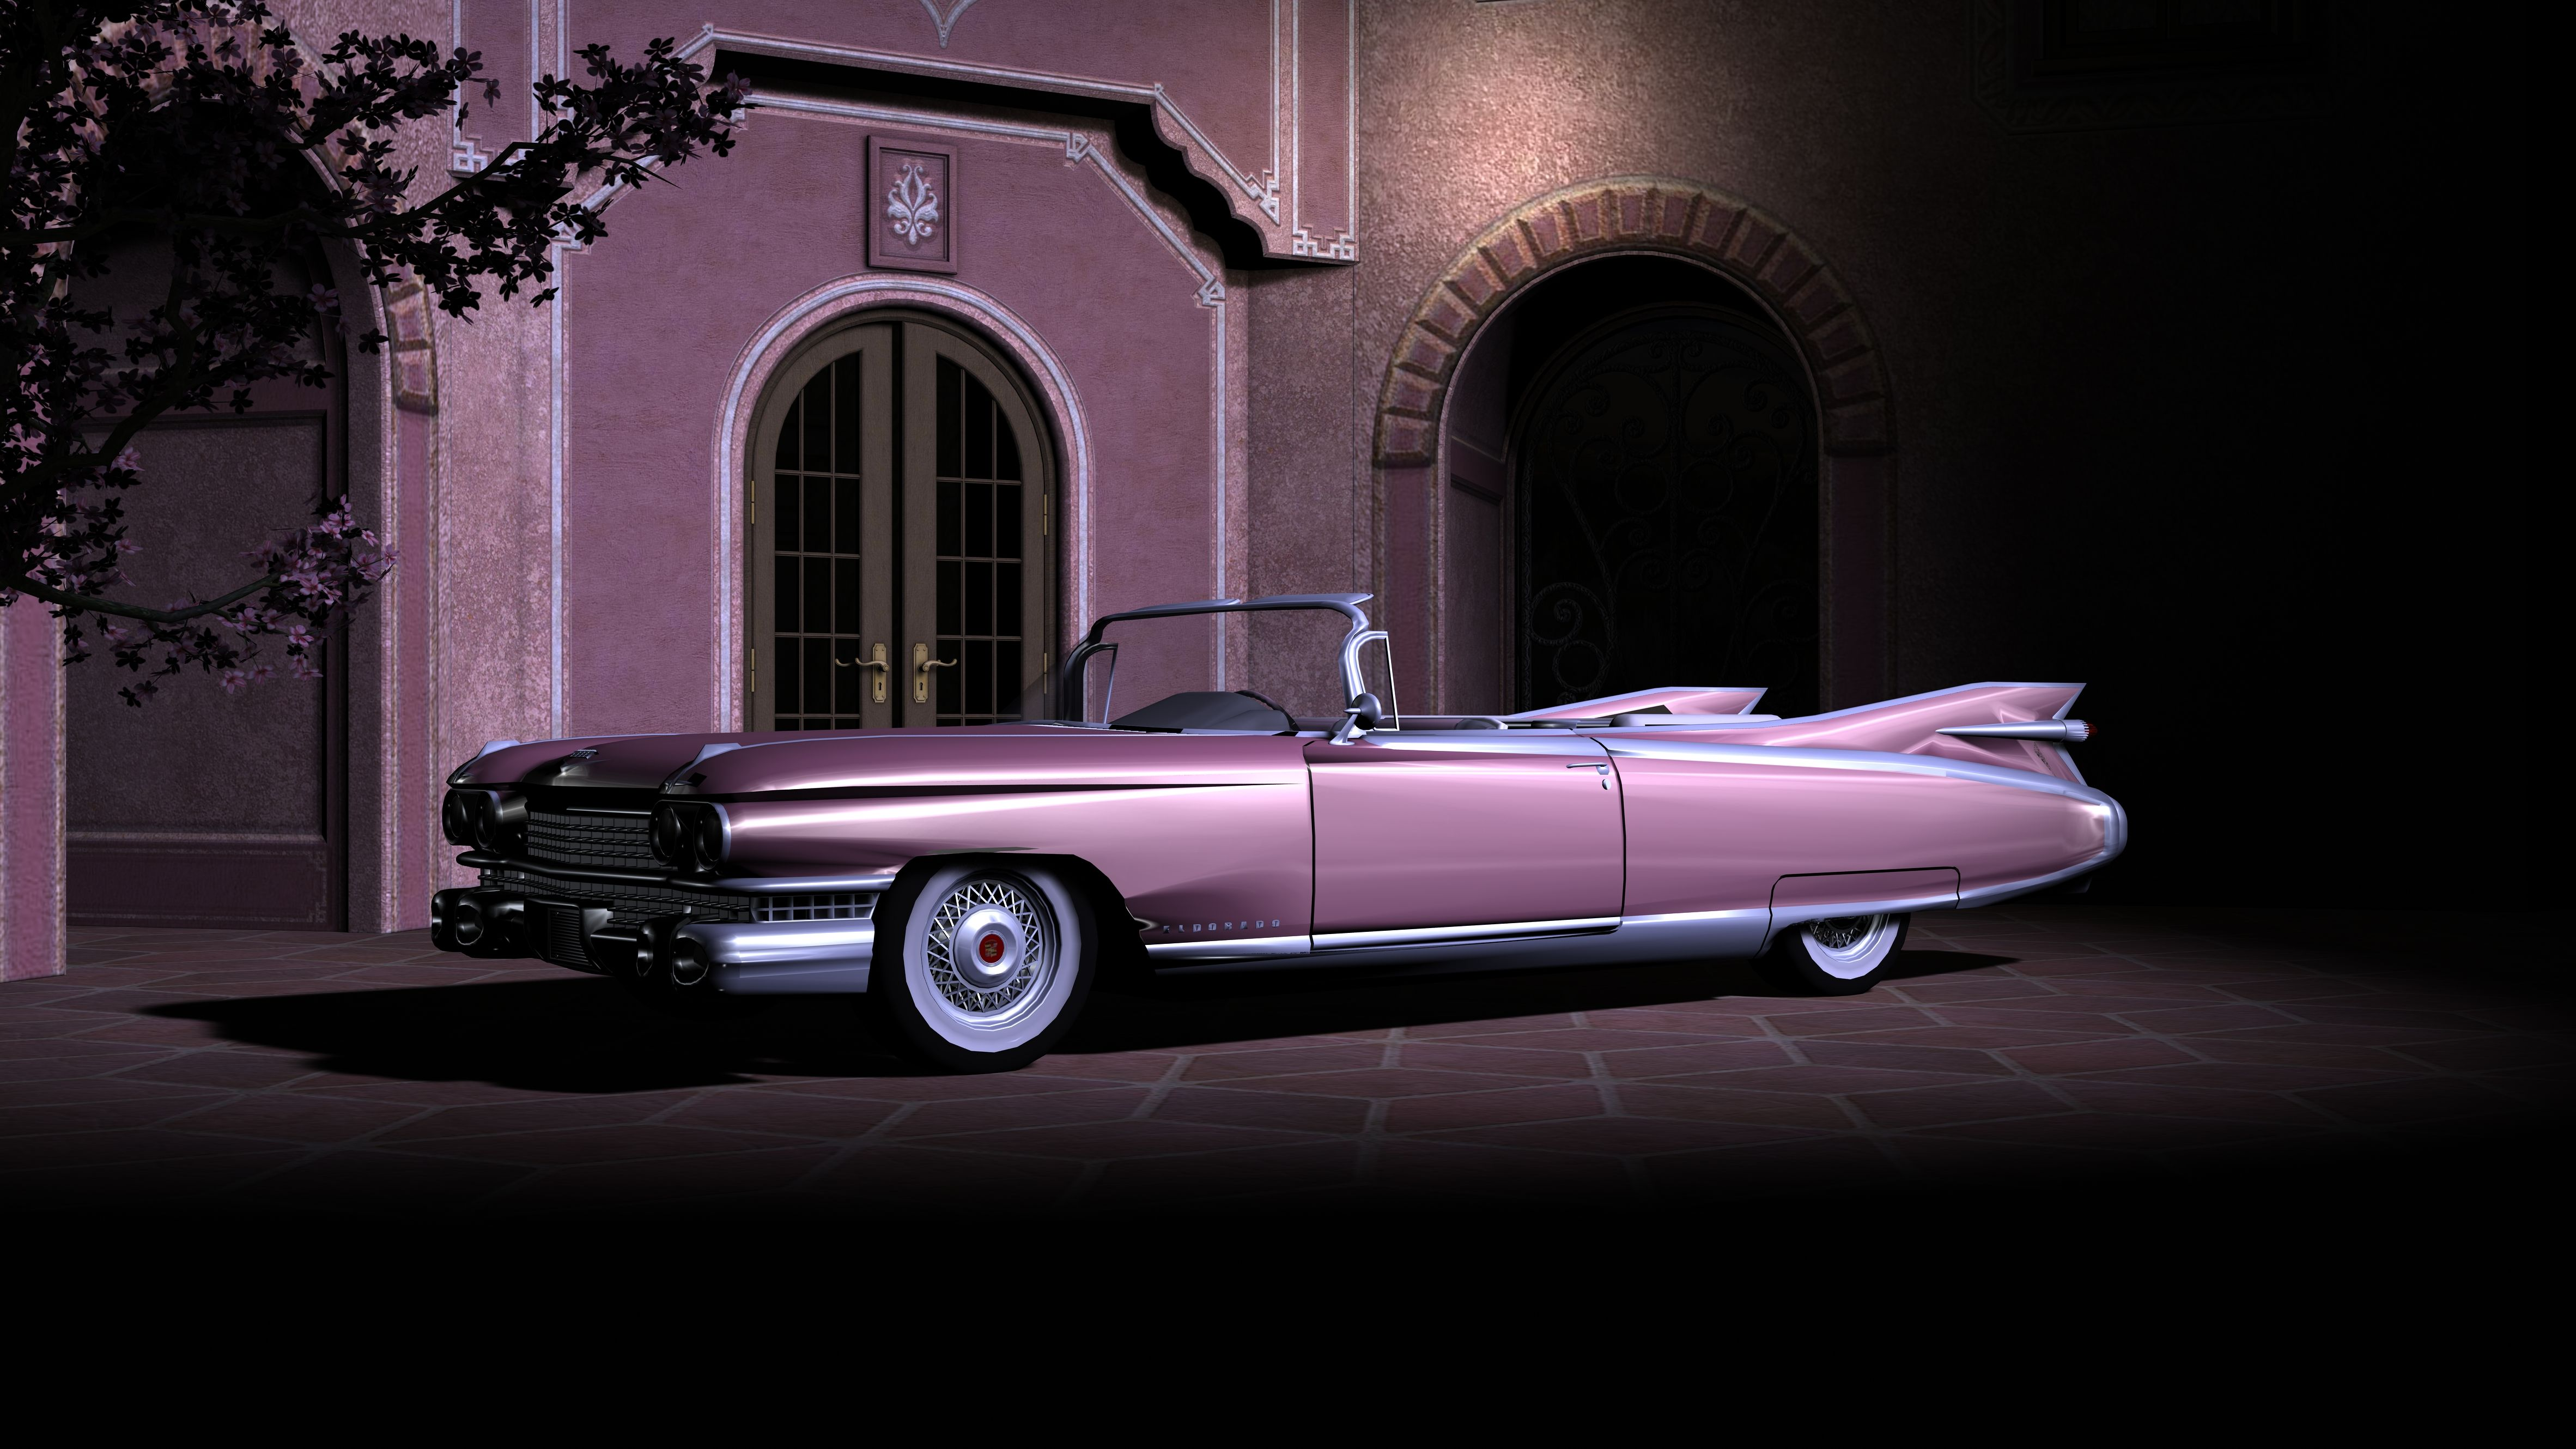 If you're tired of seeing the same wallpaper on your desktop each day, you can use a feature introduced in windows 7 to automatically update it on a daily basis. Pink Cadillac Desktop Wallpapers - Top Free Pink Cadillac